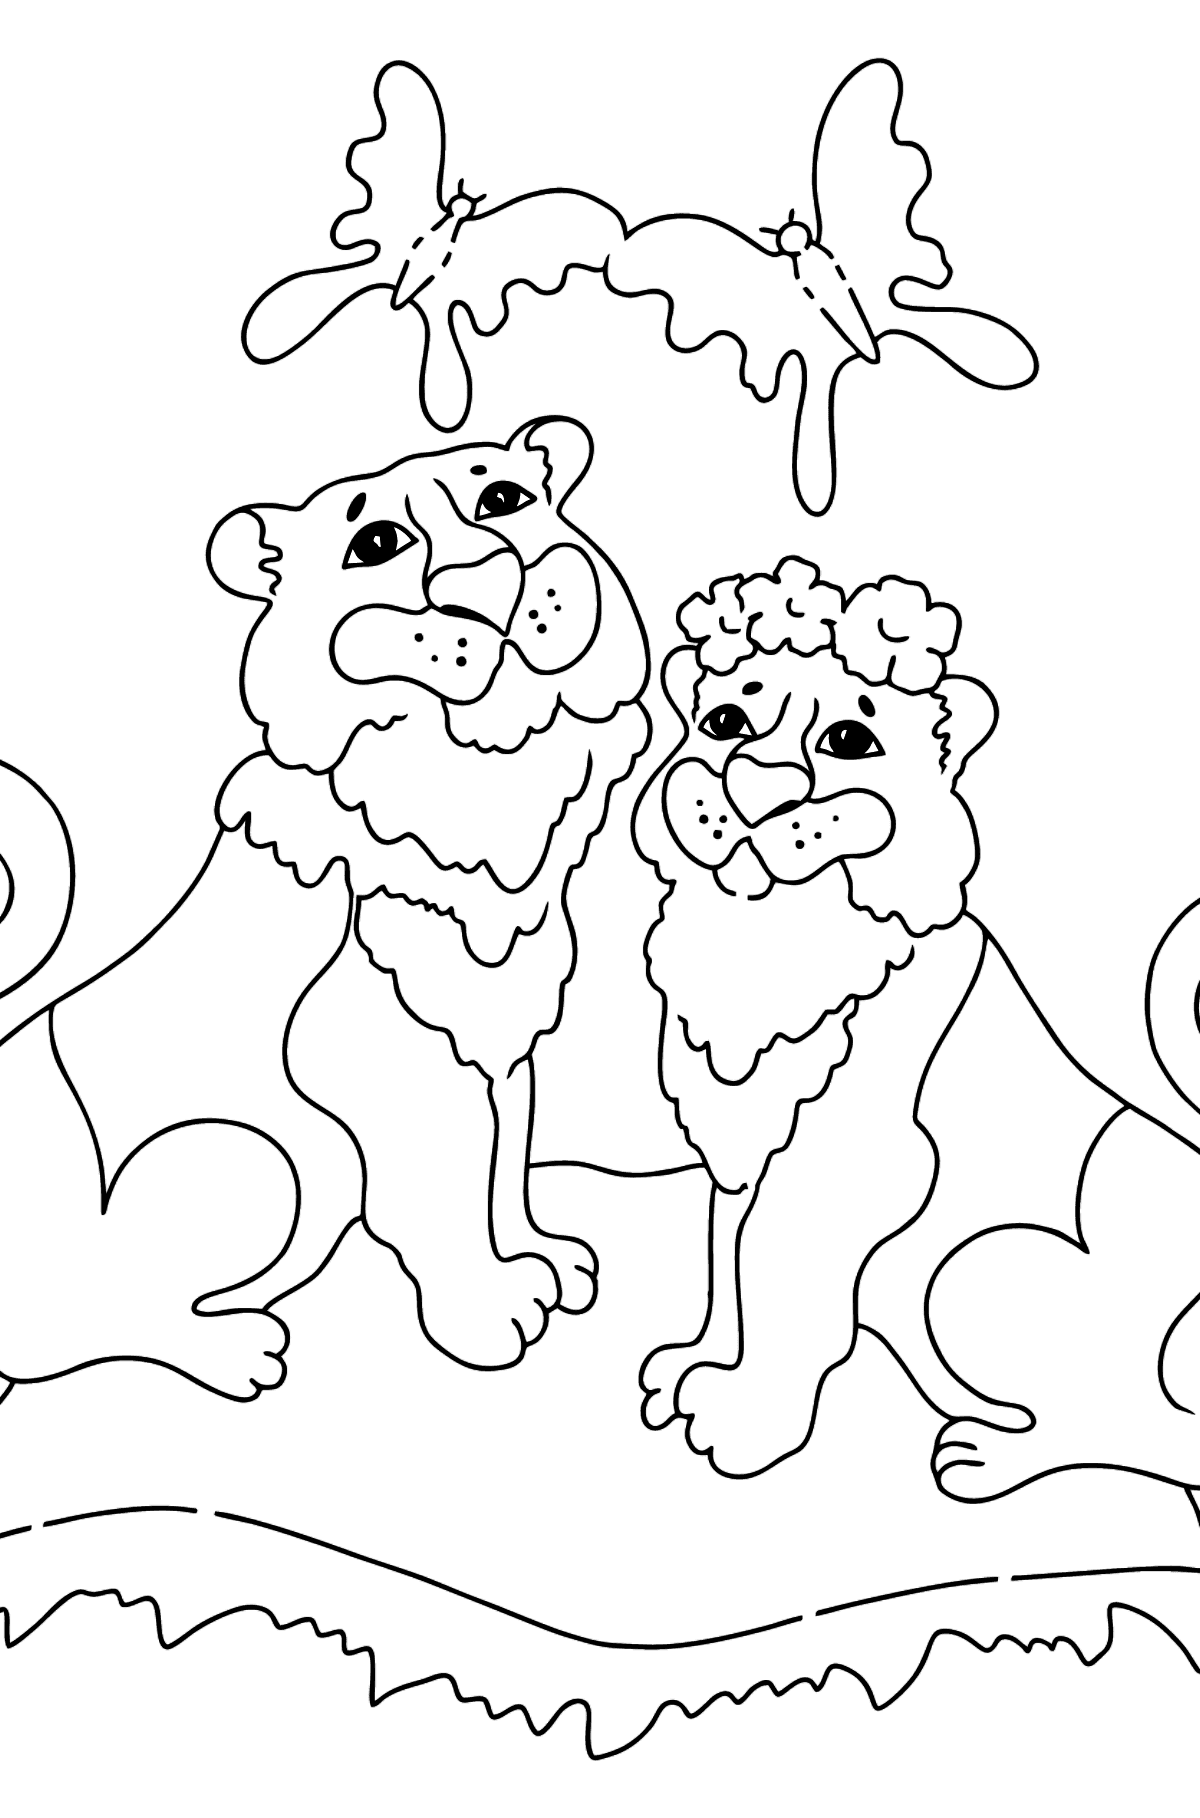 Coloring Page - A Tiger with a Tigress - Coloring Pages for Kids